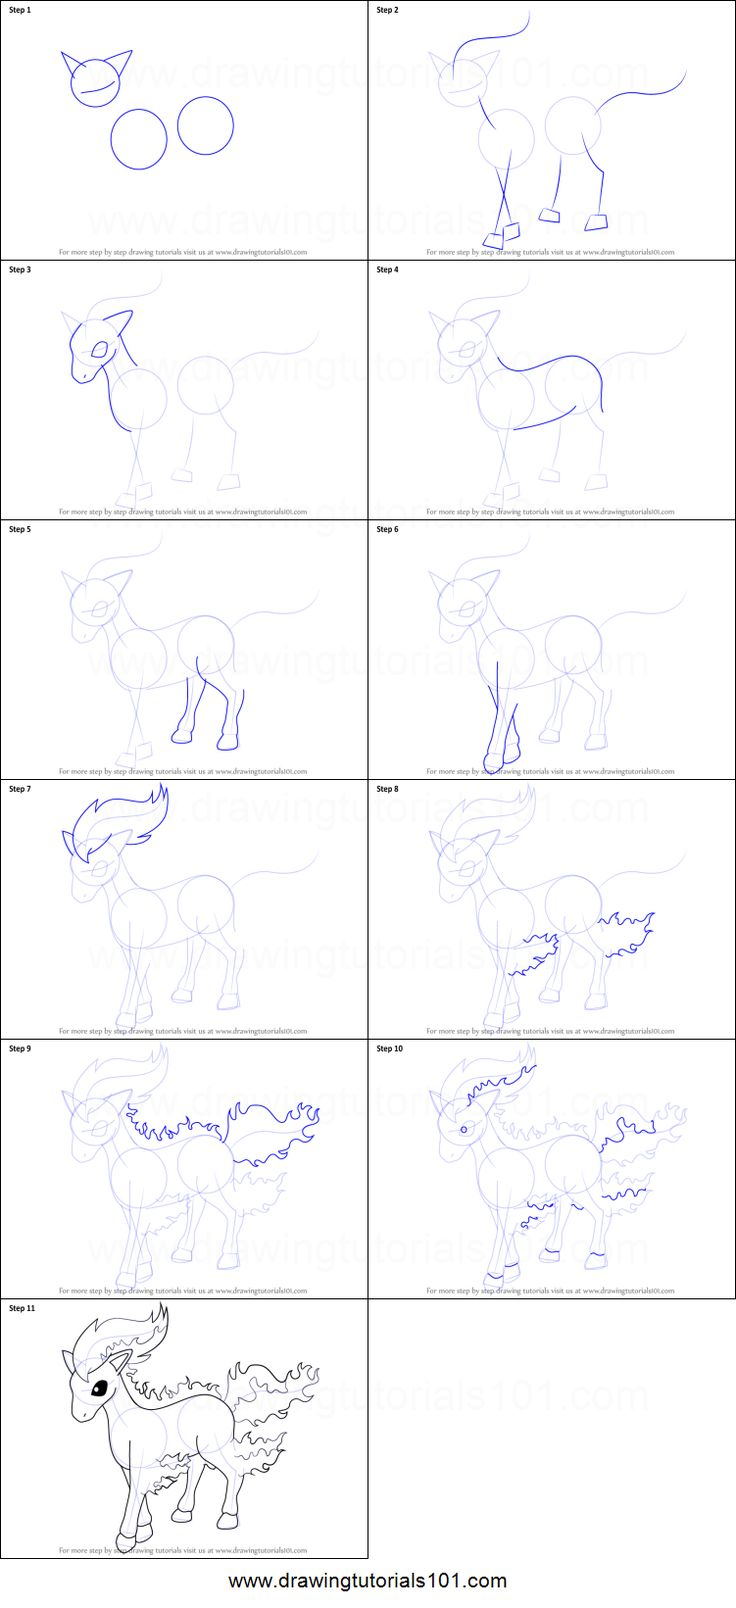 How To Draw Ponyta From Pokemon Printable Drawing Sheet By  Drawingtutorials101